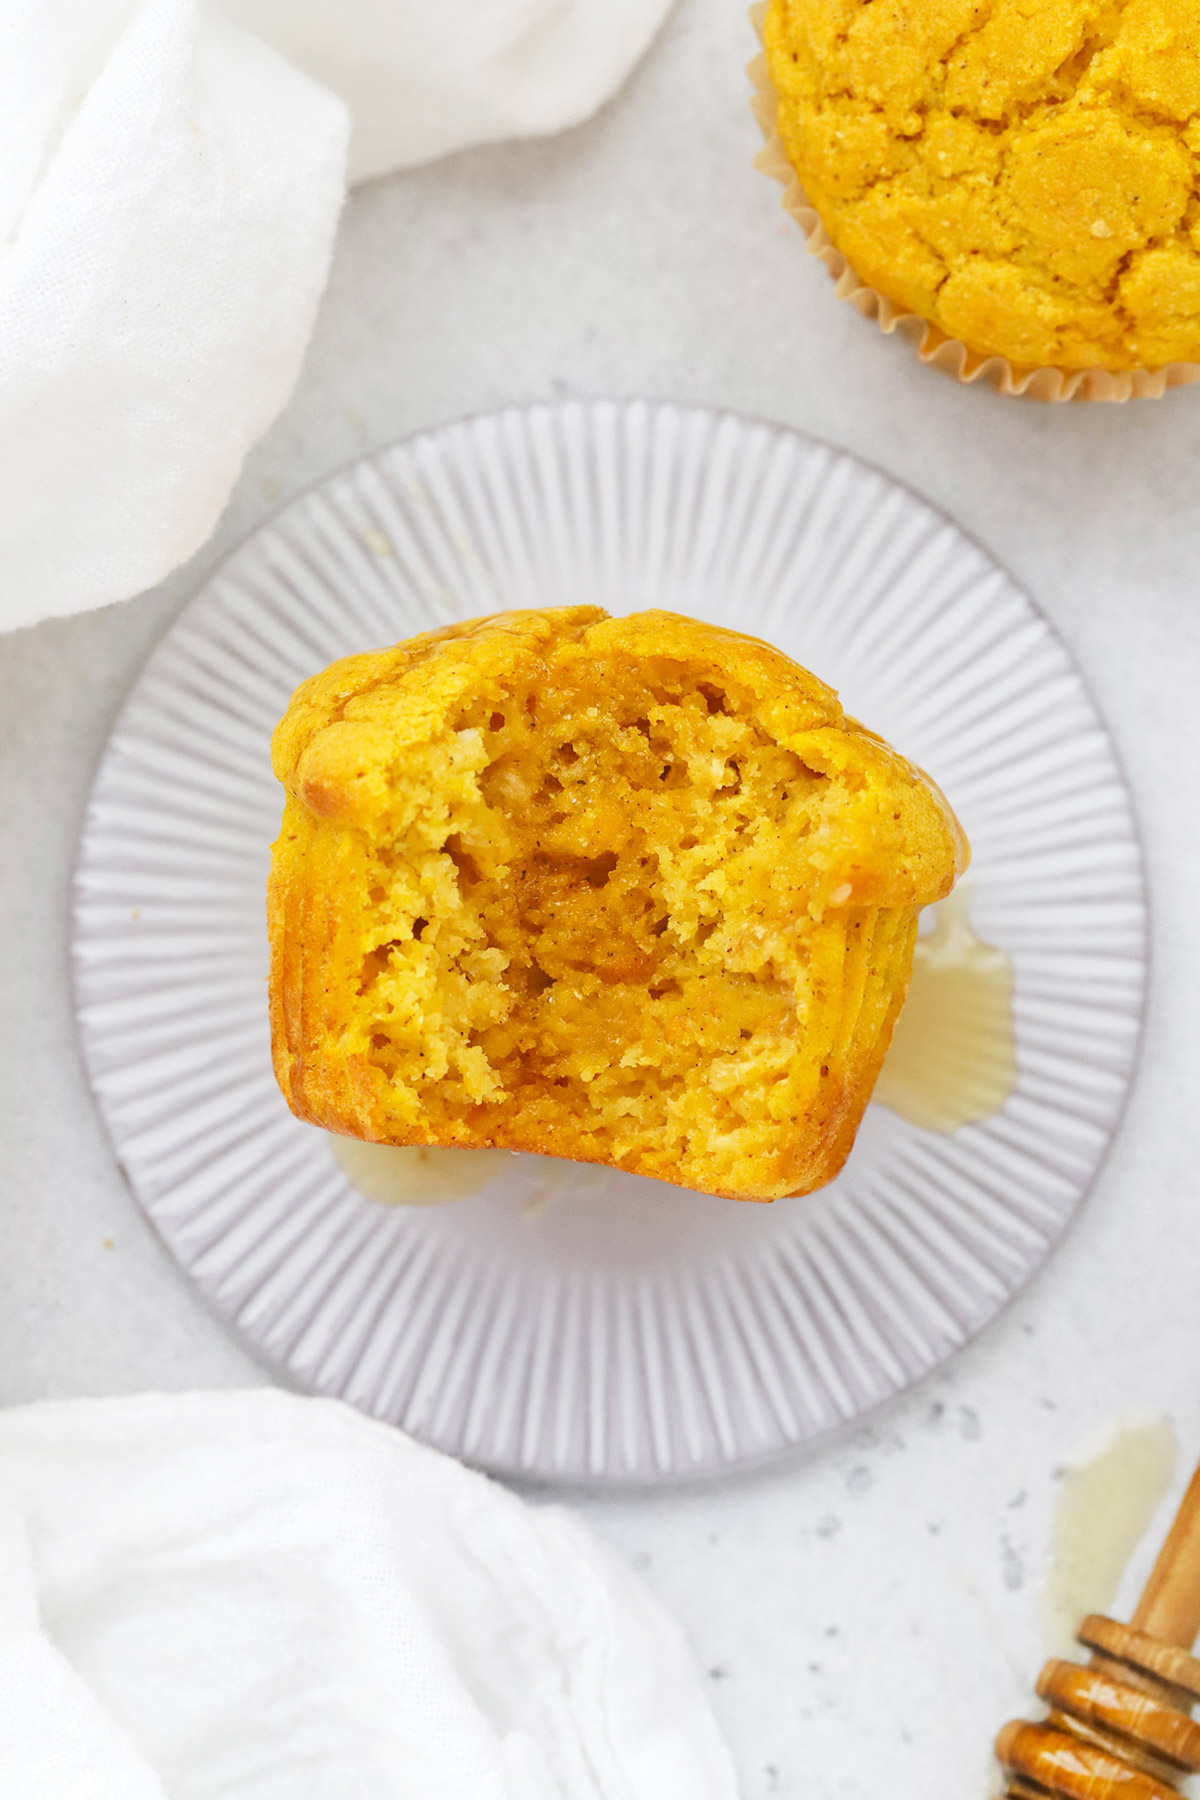 Overhead view of a gluten-free pumpkin muffin with a bite out of it, drizzled with honey